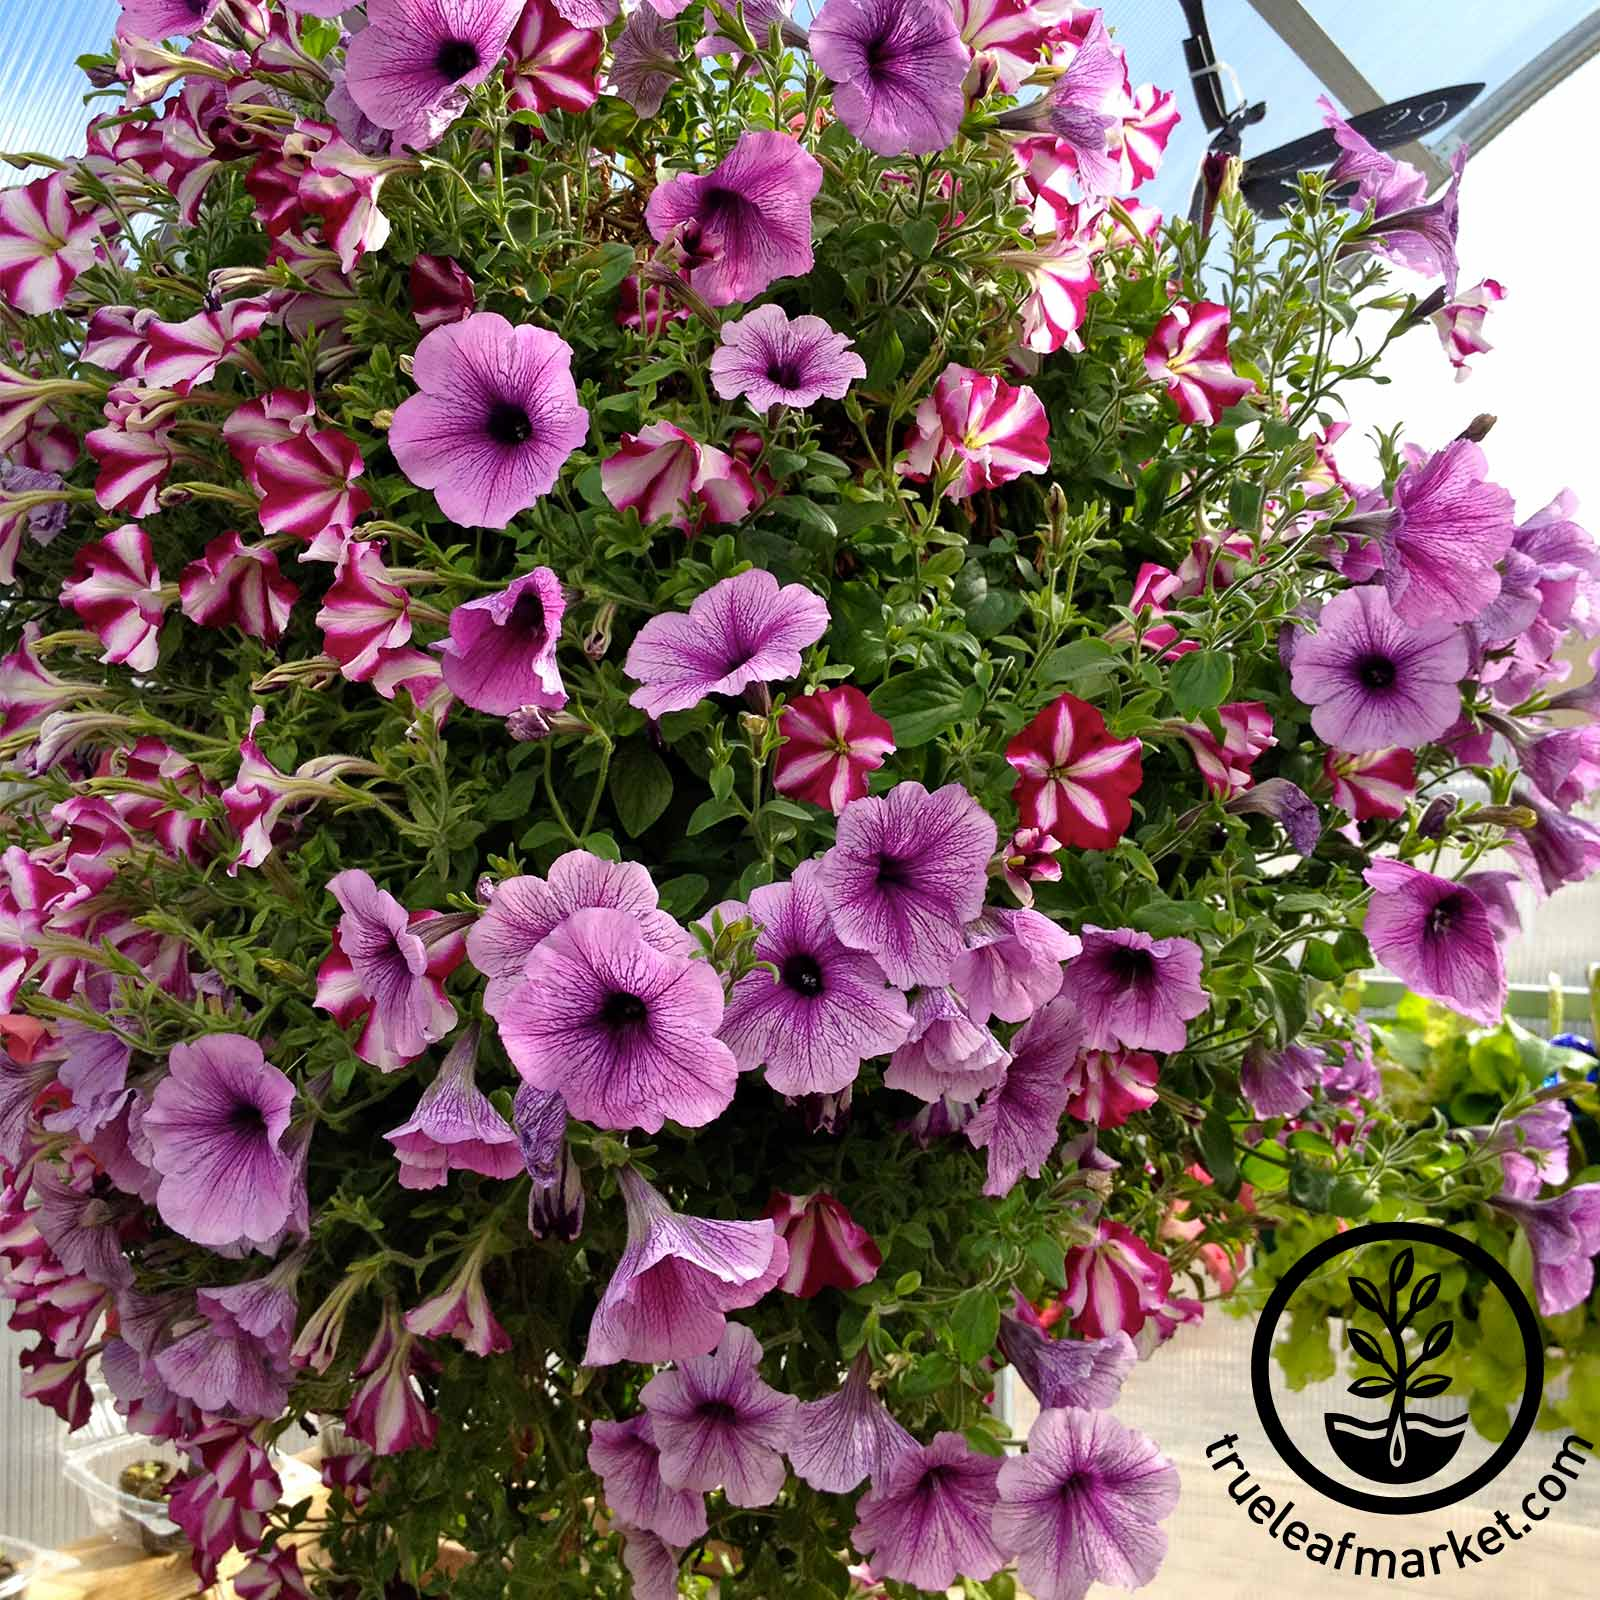 6 Gallon Hanging Basket - TL-16530P